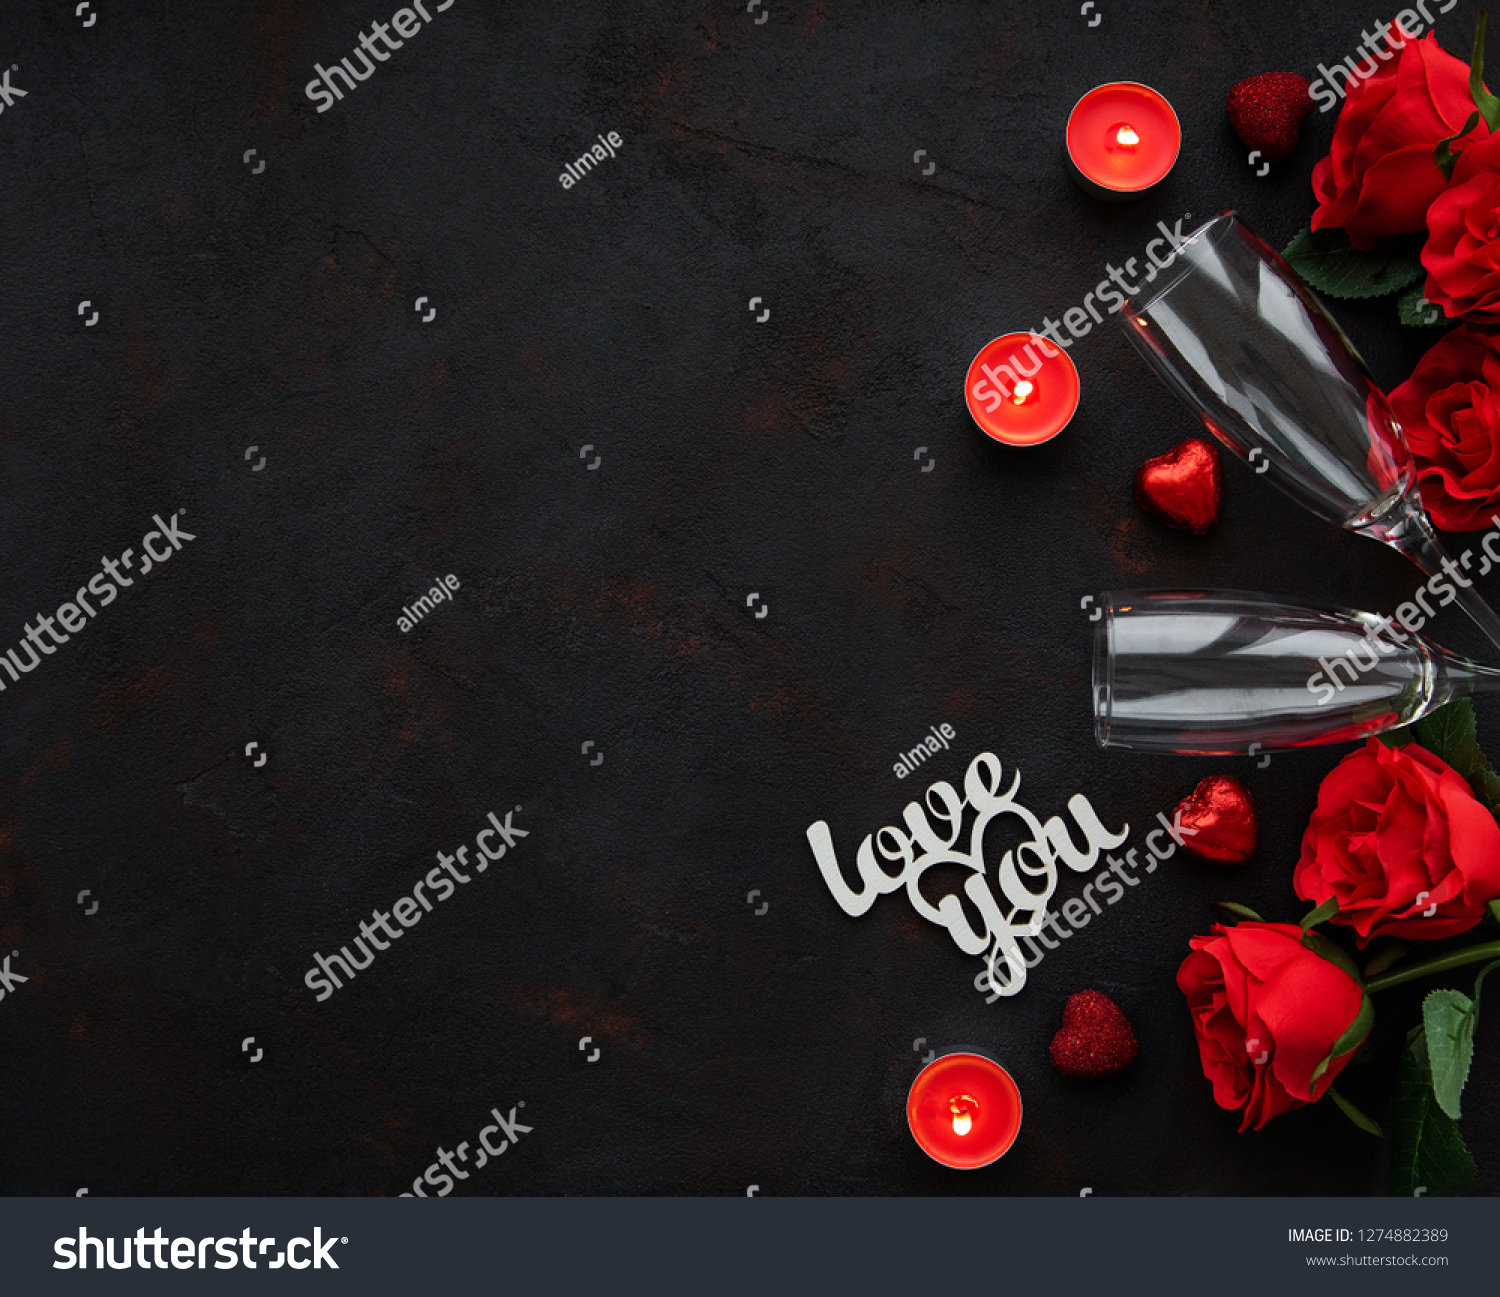 Valentines day romantic background - red roses, glasses, candle and hearts #1274882389